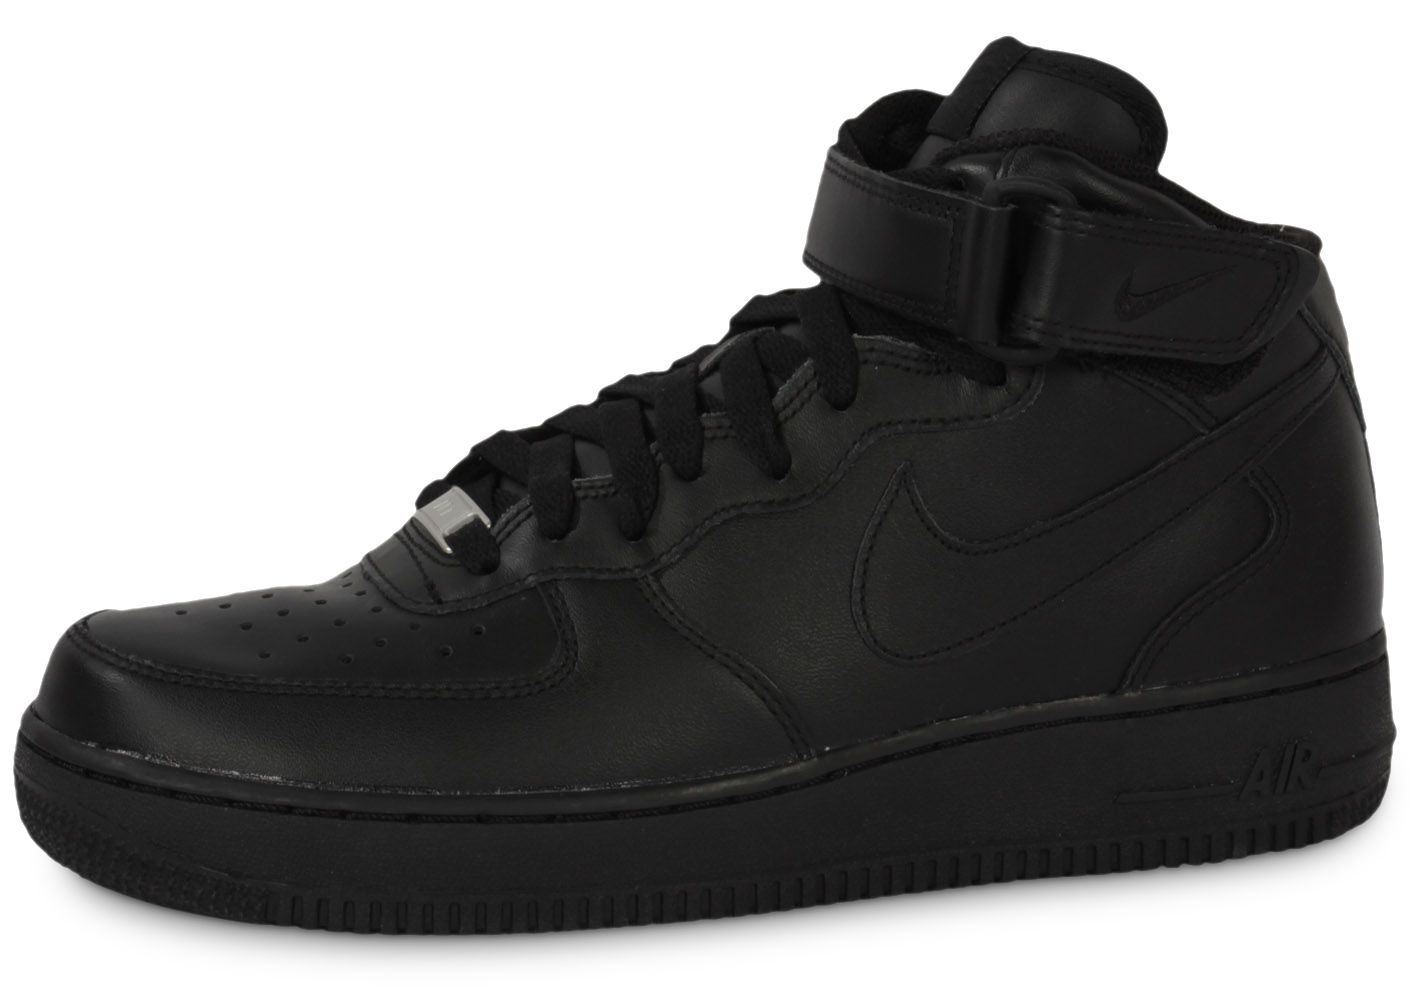 Nike homme air force 1 mid 07 noire baskets